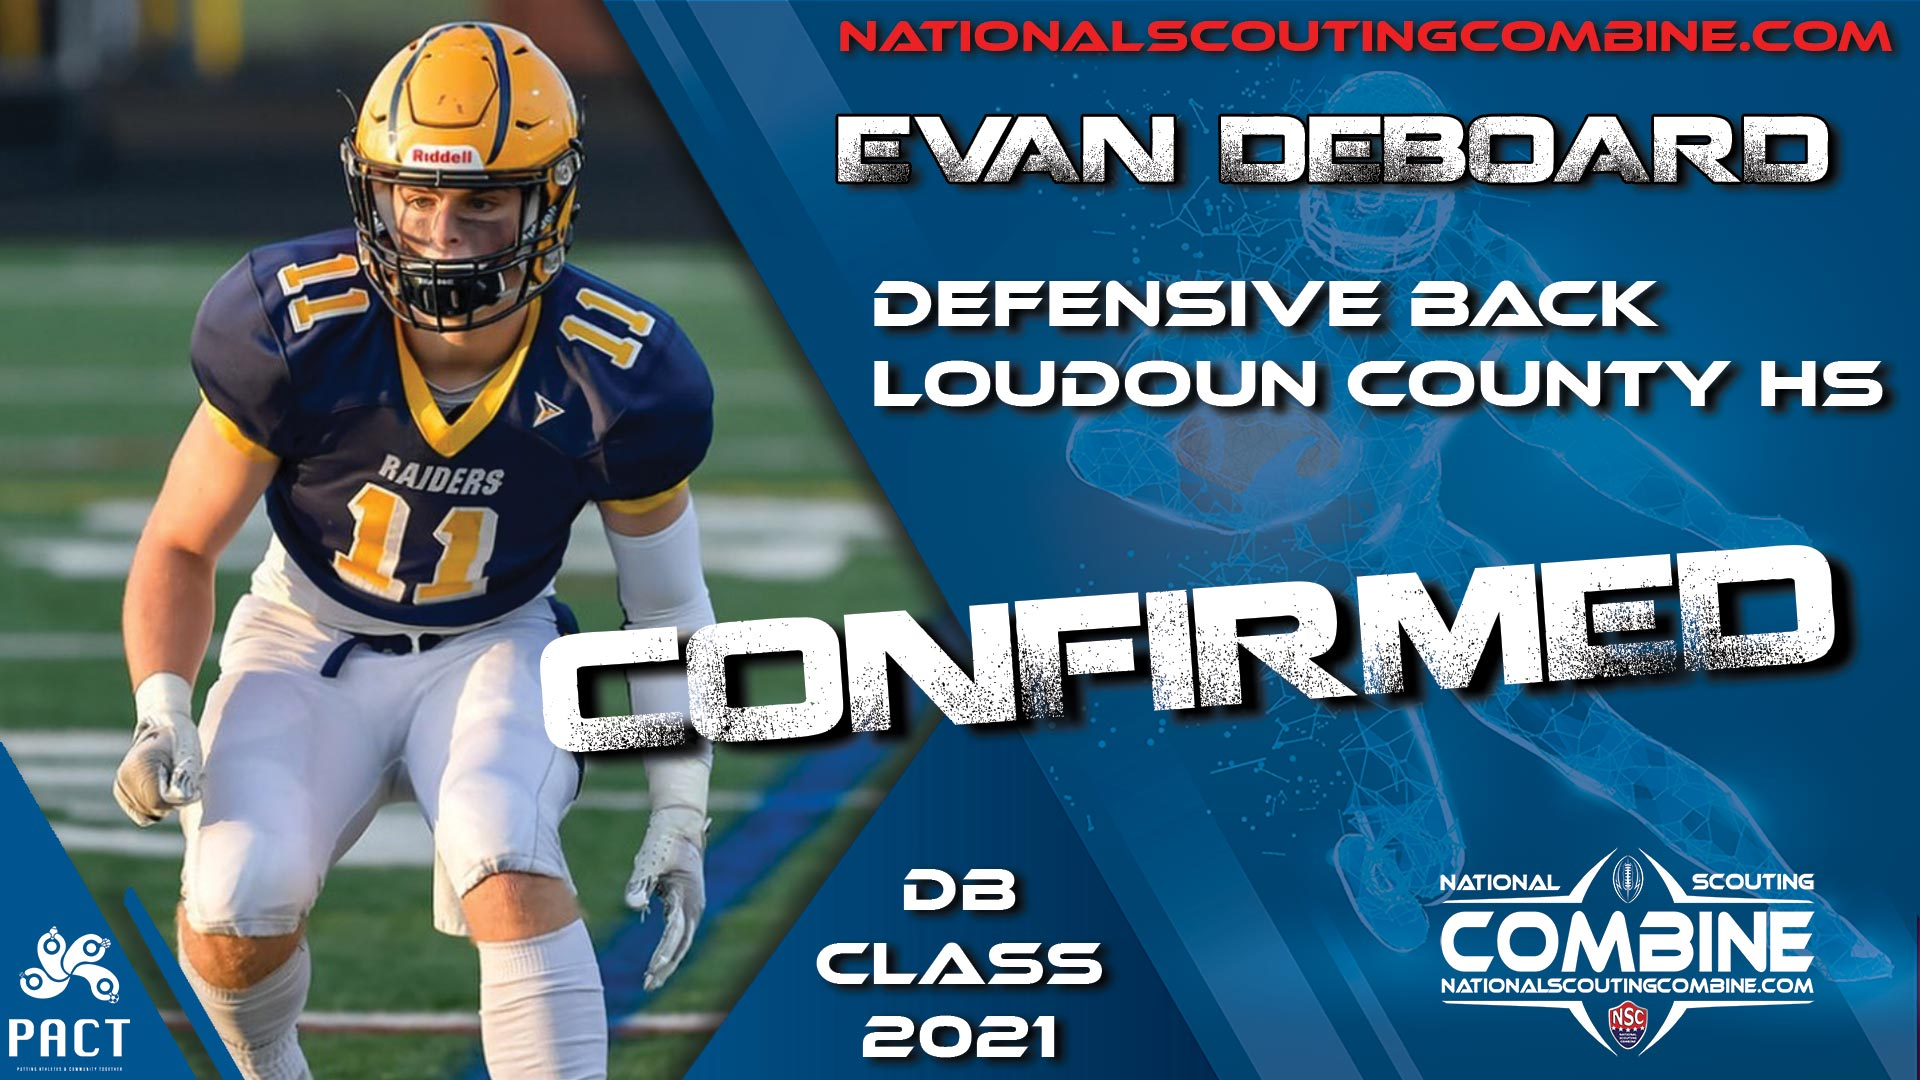 National Scouting Combine HS Prospect Evan DeBoard, DB from Loudoun County HS